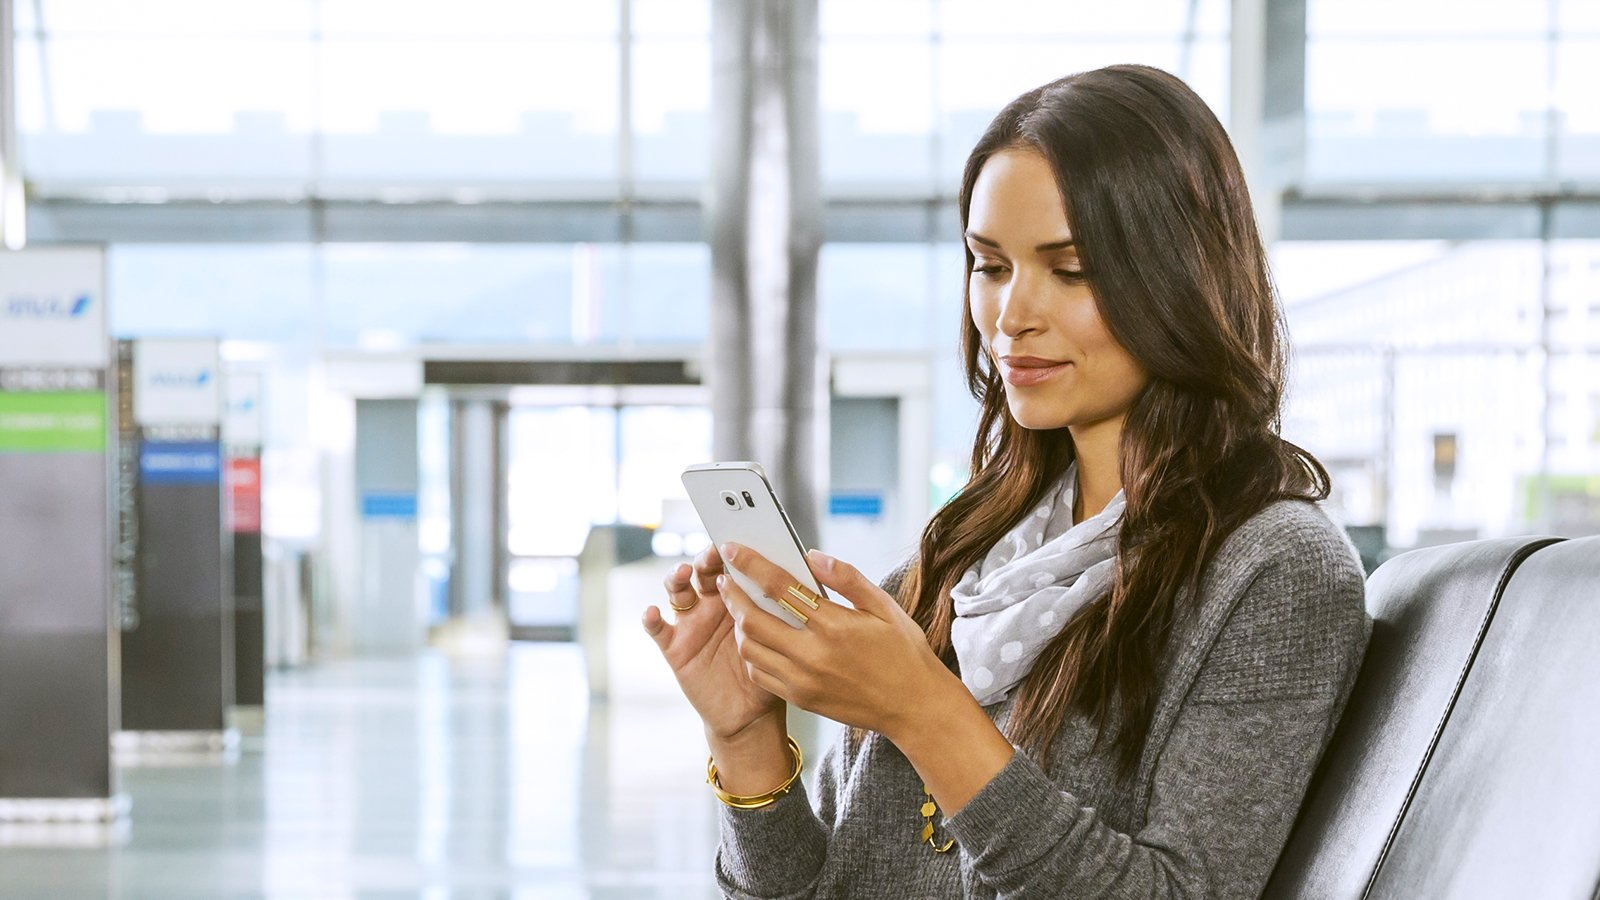 Woman in airport using mobile phone.